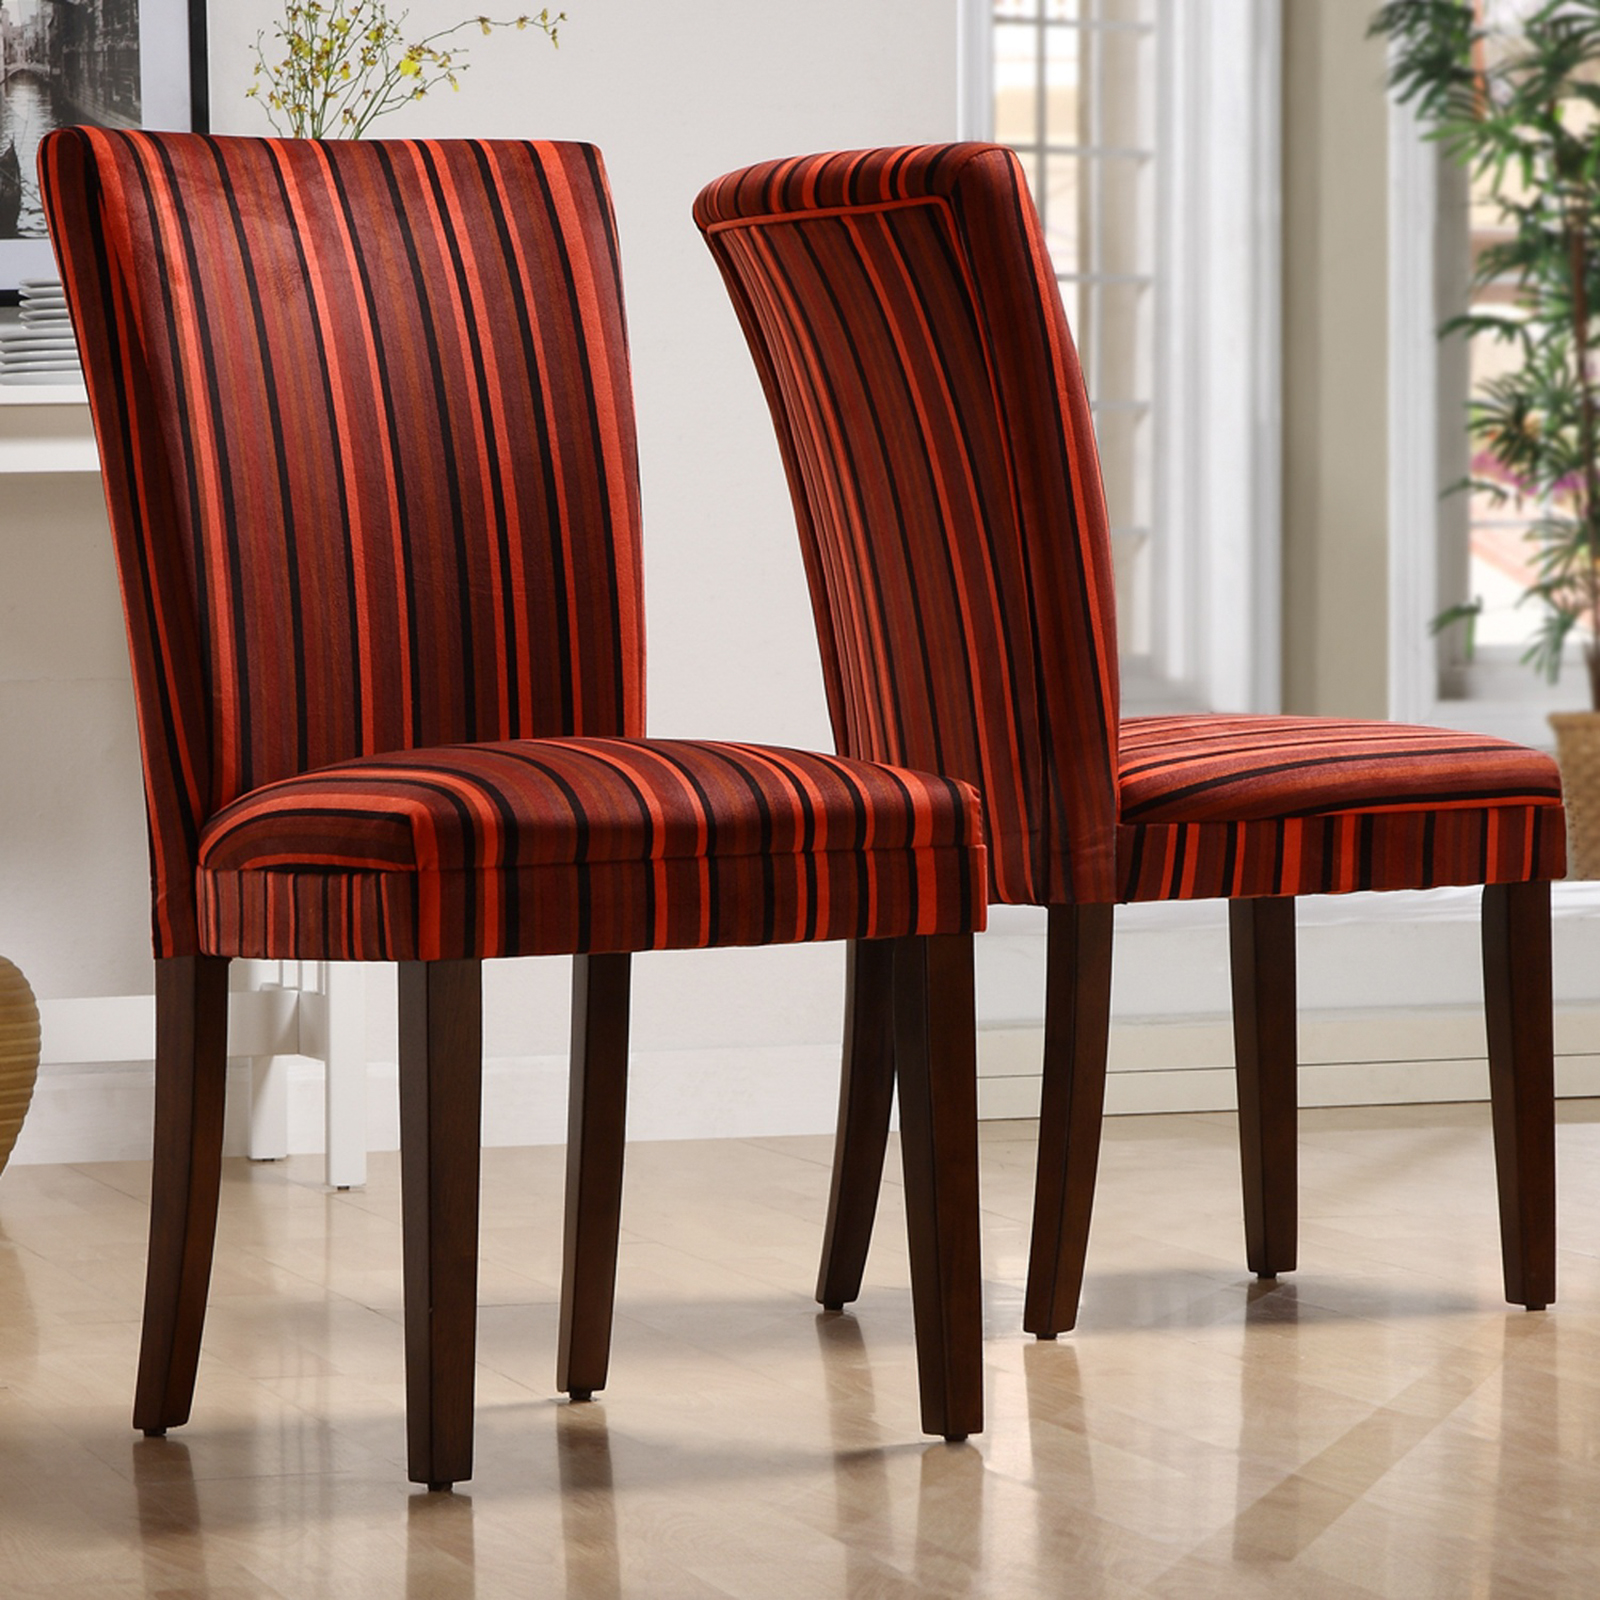 Dining Chair Fabric Homelegance Royal Red Striped Design Fabric Parson Chairs